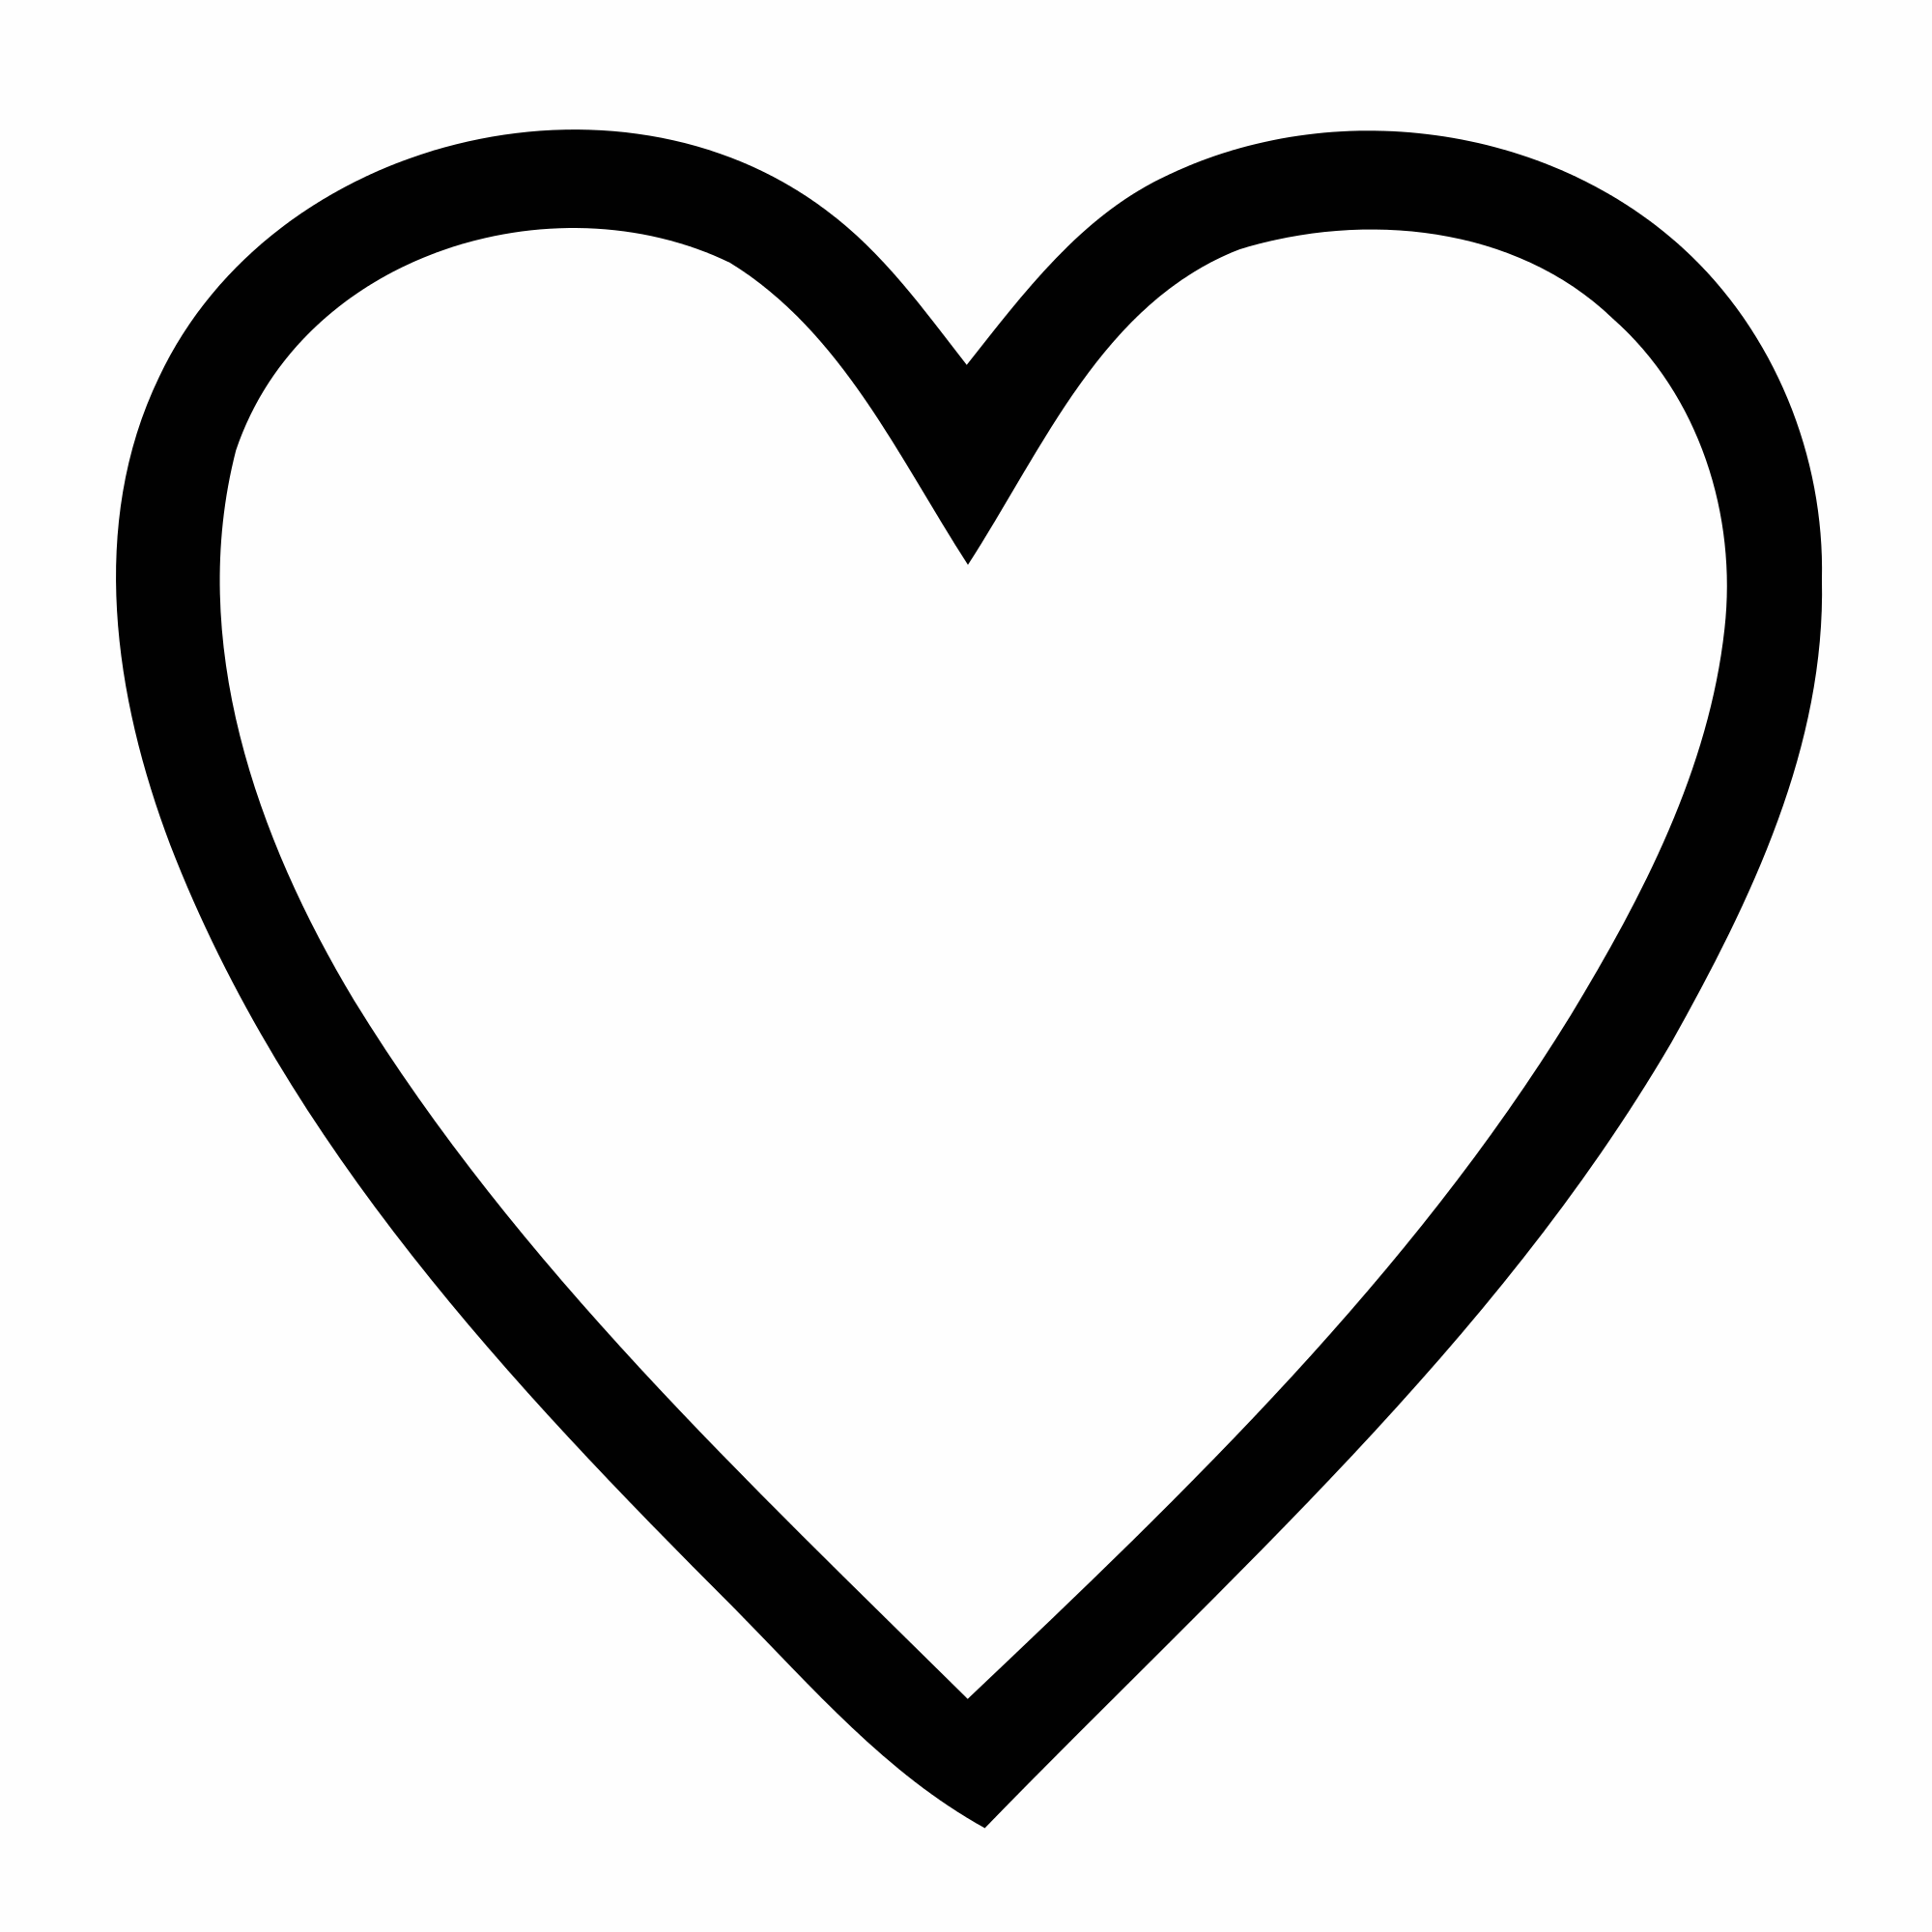 File:Heart-SG2001.svg - Wikimedia Commons